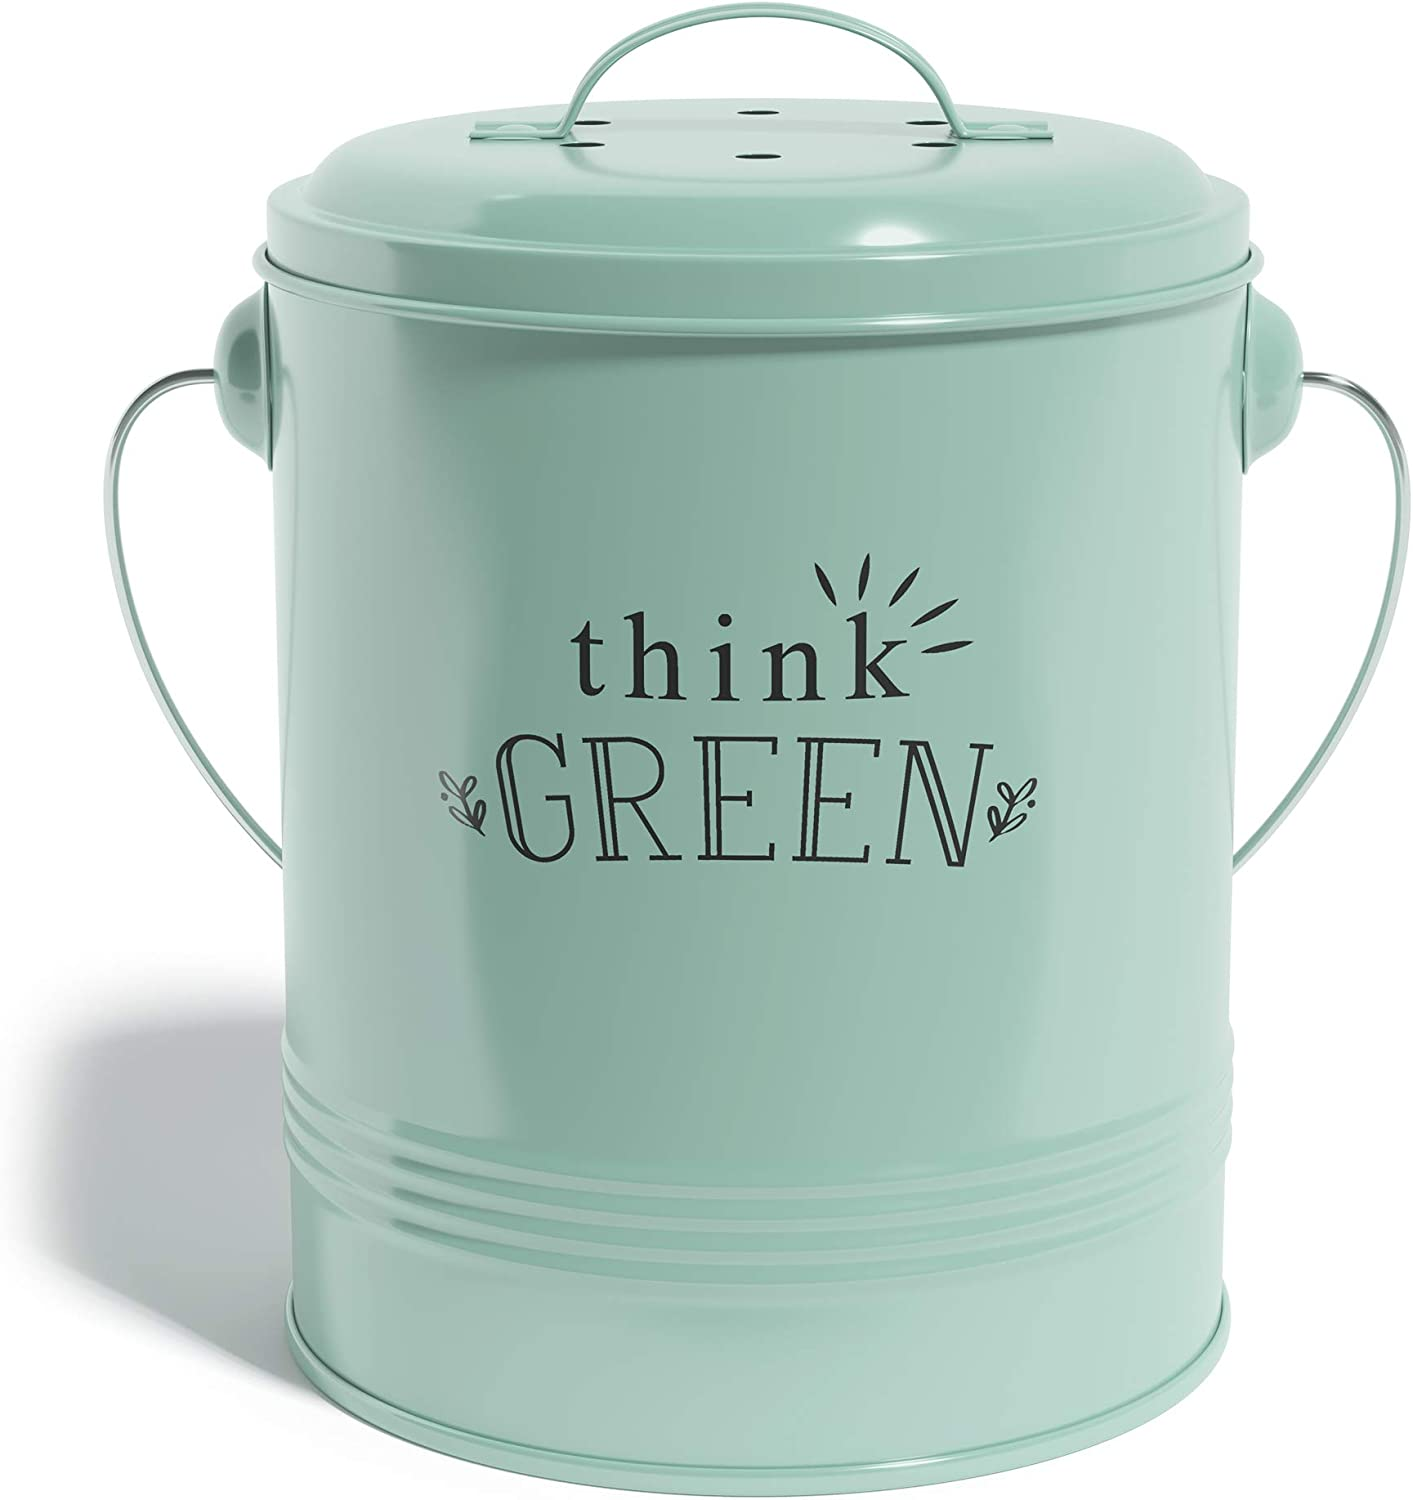 Barnyard Designs Compost Bin with Lid for Kitchen Countertop, Food Composter Container Can, Small Indoor Compost Trash Bucket, 1.2 Gallon, Galvanized Steel in Color Mint, 7